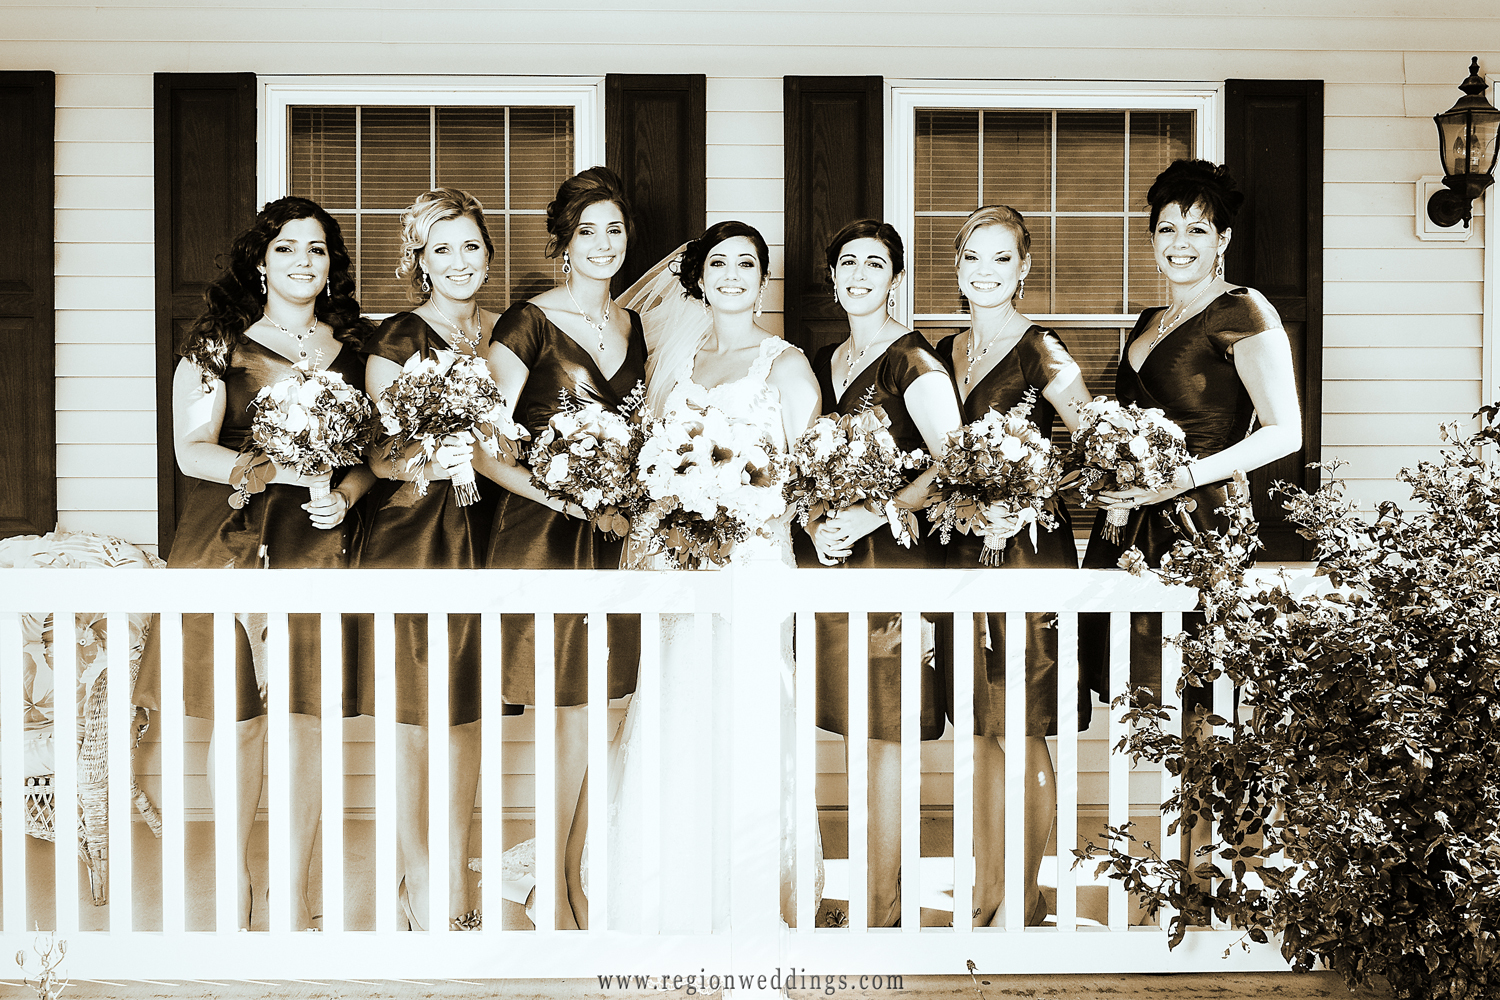 The bride is surrounded by her friends on the porch of her parent's home in Cedar Lake on the morning of her wedding.